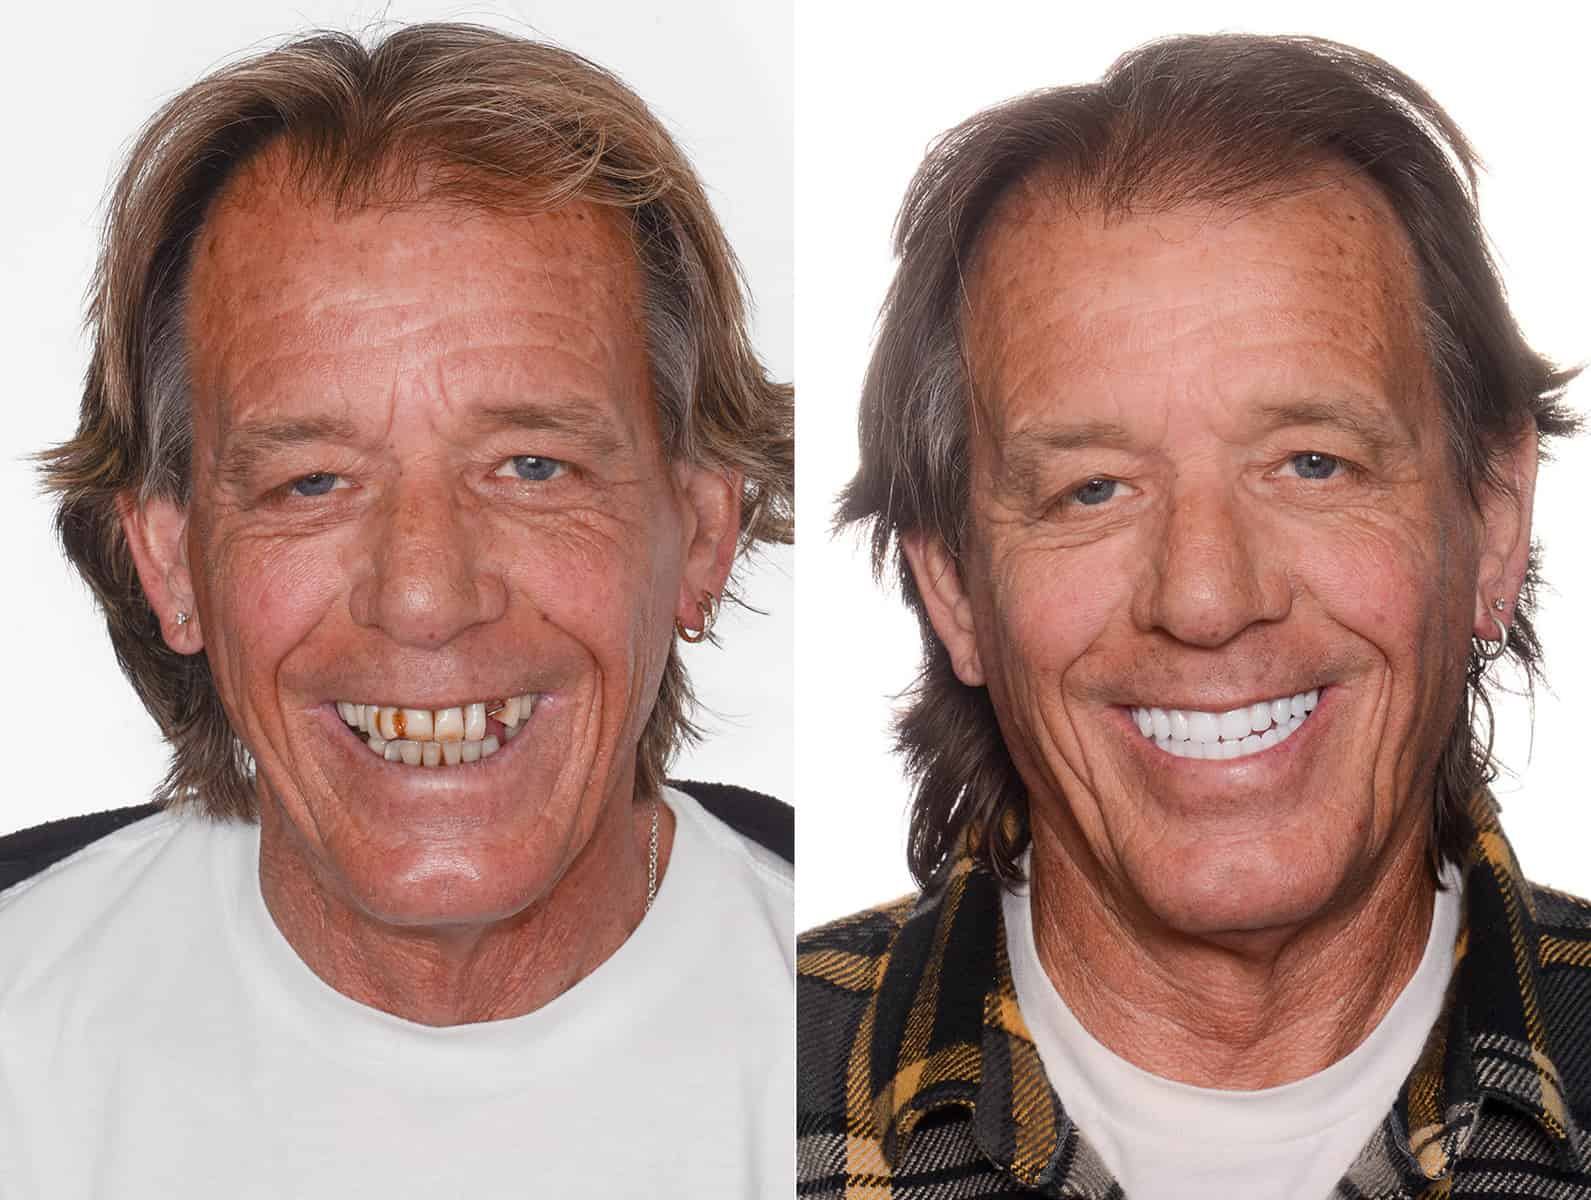 John J. patient of ArtLab Dentistry before and after photo